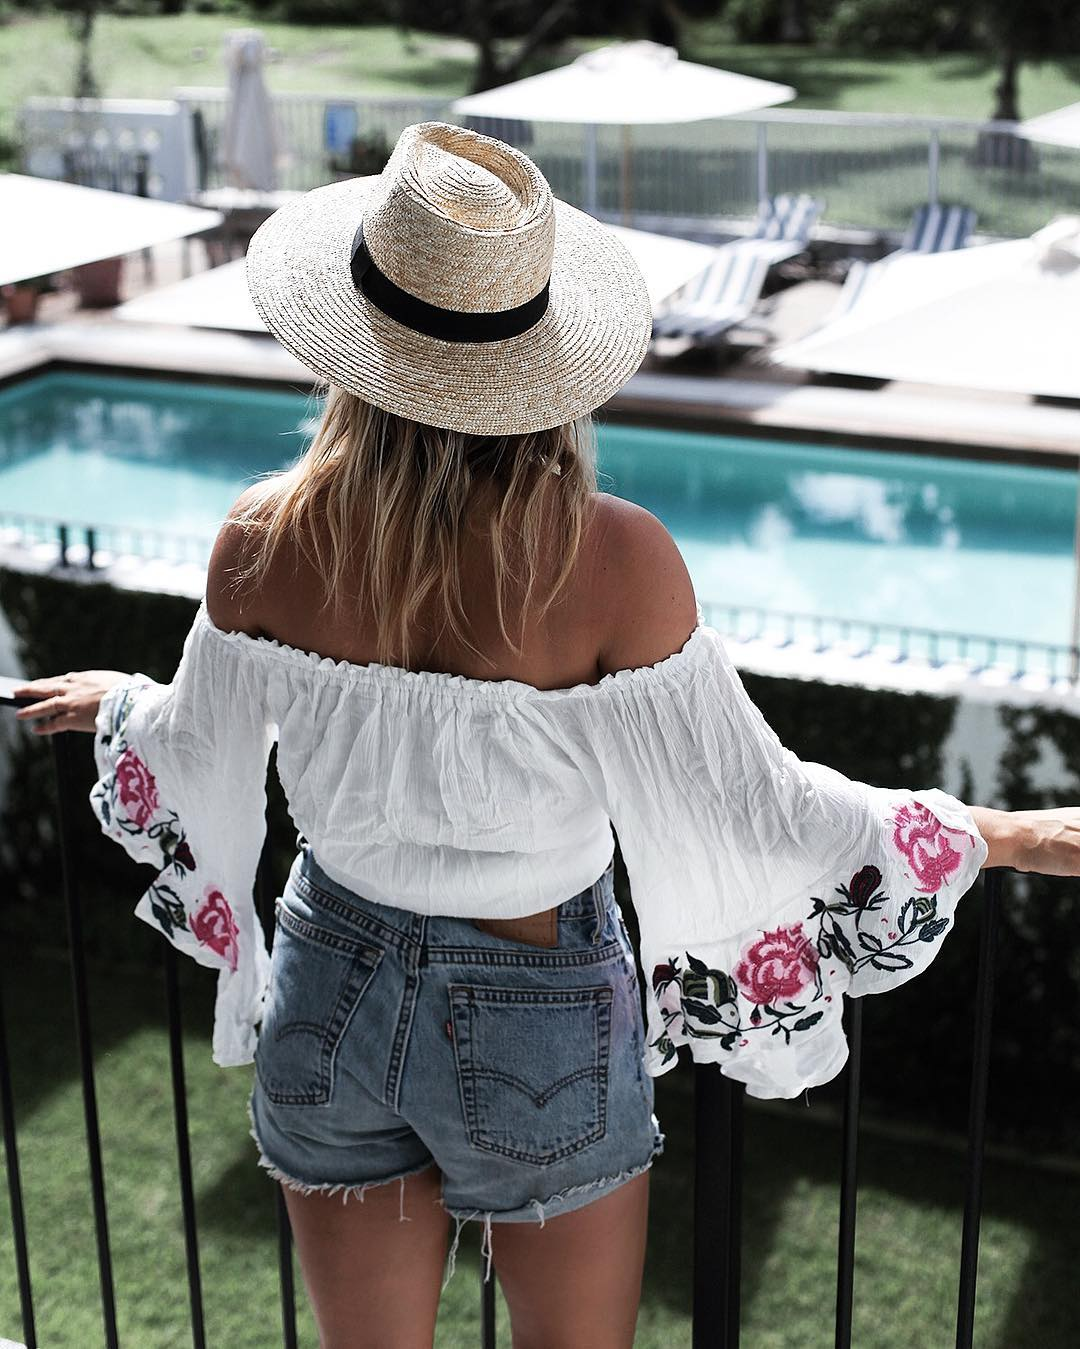 36 Cute Outfit Ideas for Summer 2018 - Summer Outfit Inspirations